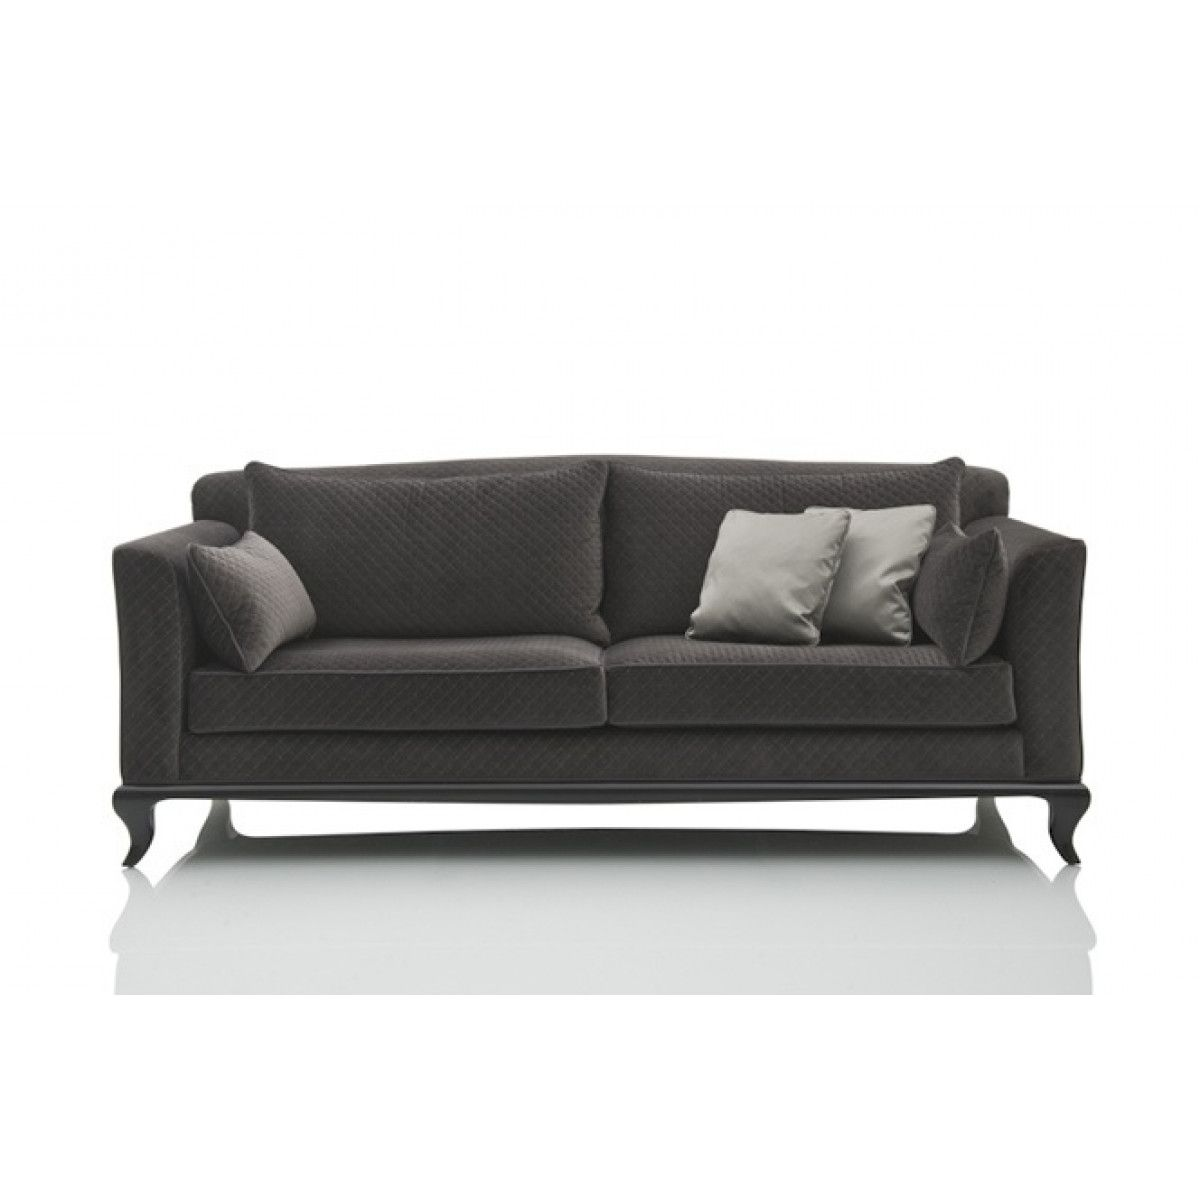 Jnl Sofa Dwg Sofas & Day Beds : Confidence 3 Seat Sofa | 家具——沙发/多人沙发